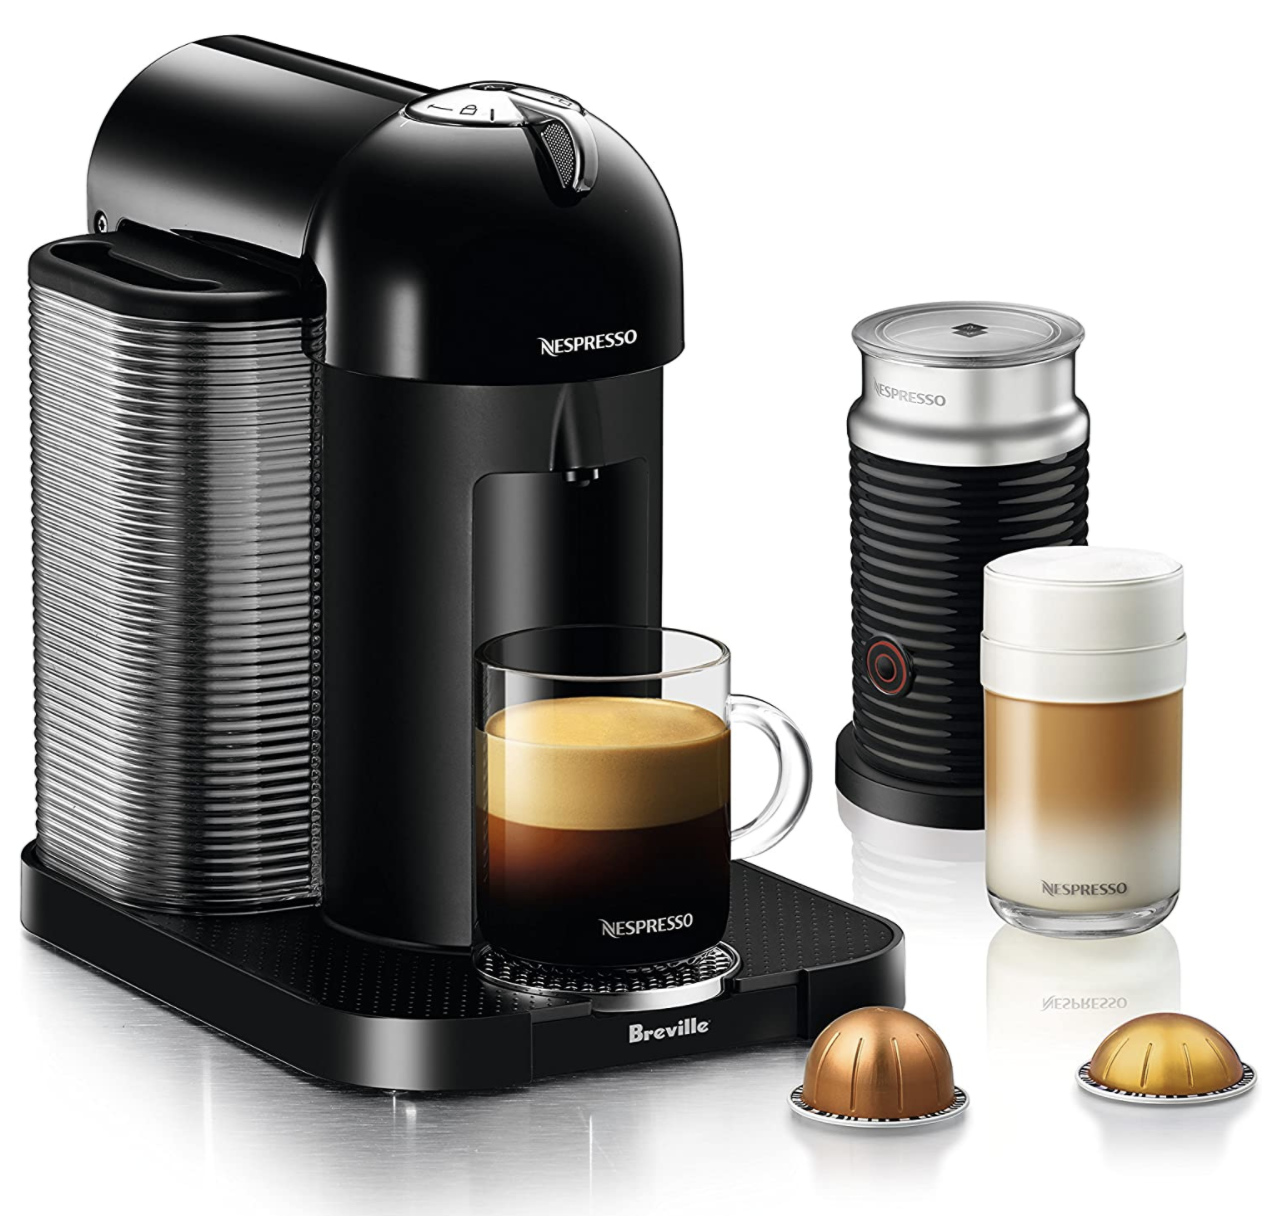 what's the best keurig coffee maker for price